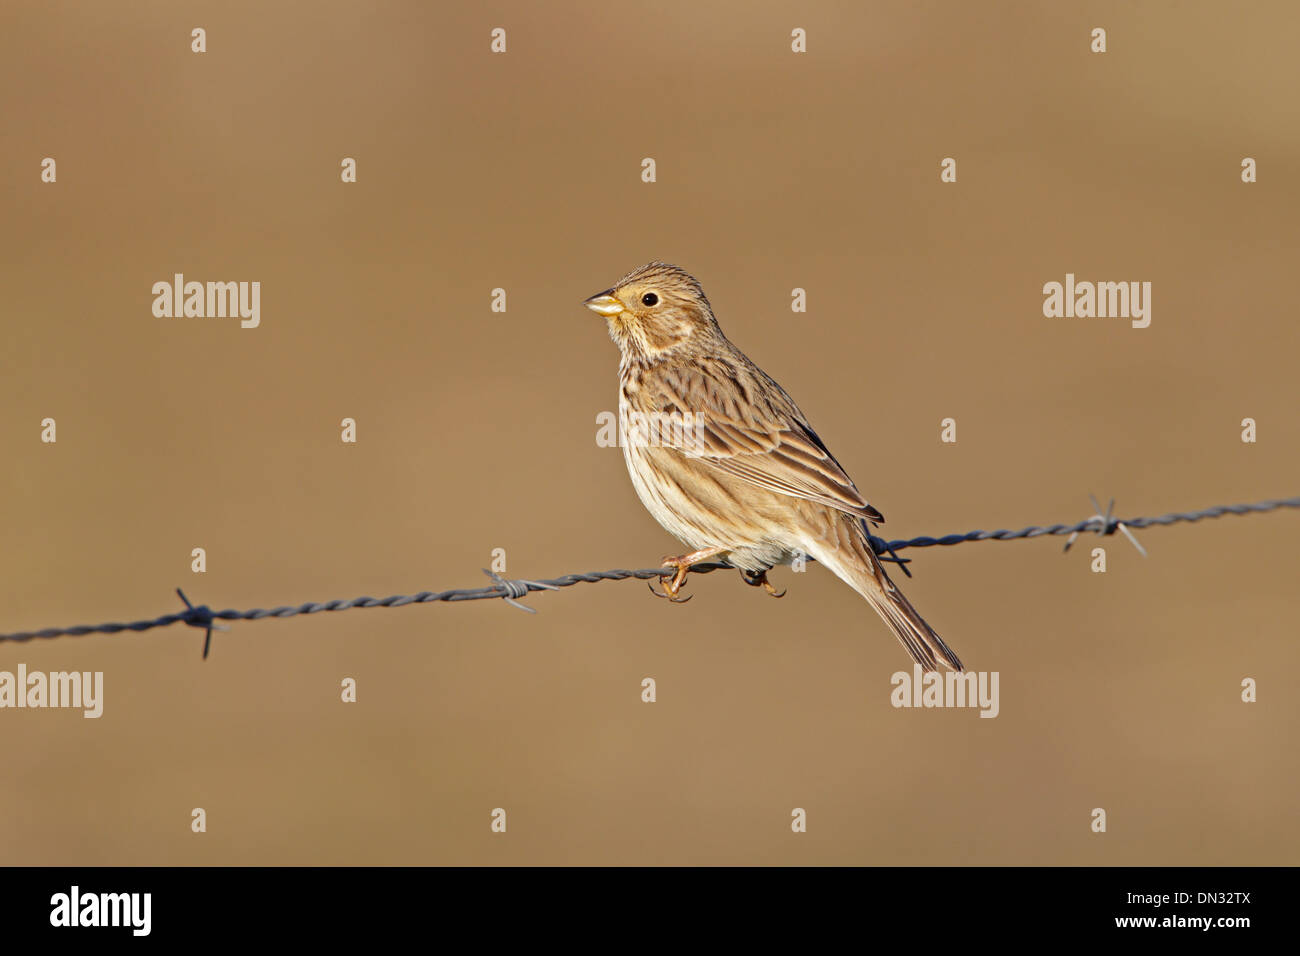 Corn Bunting perched on a barbwire fence - Stock Image